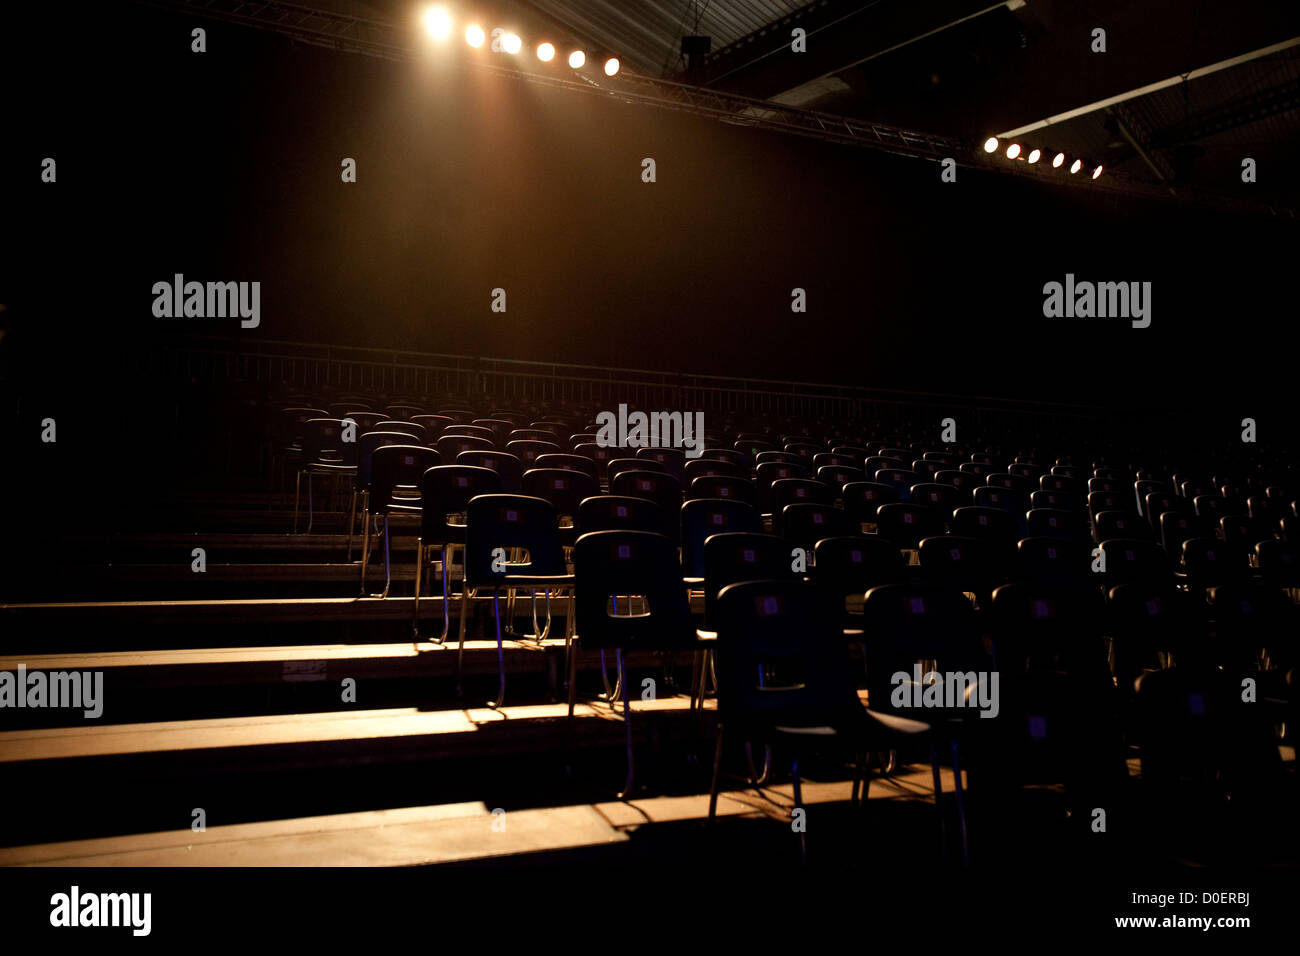 Empty seats in a theater - Stock Image